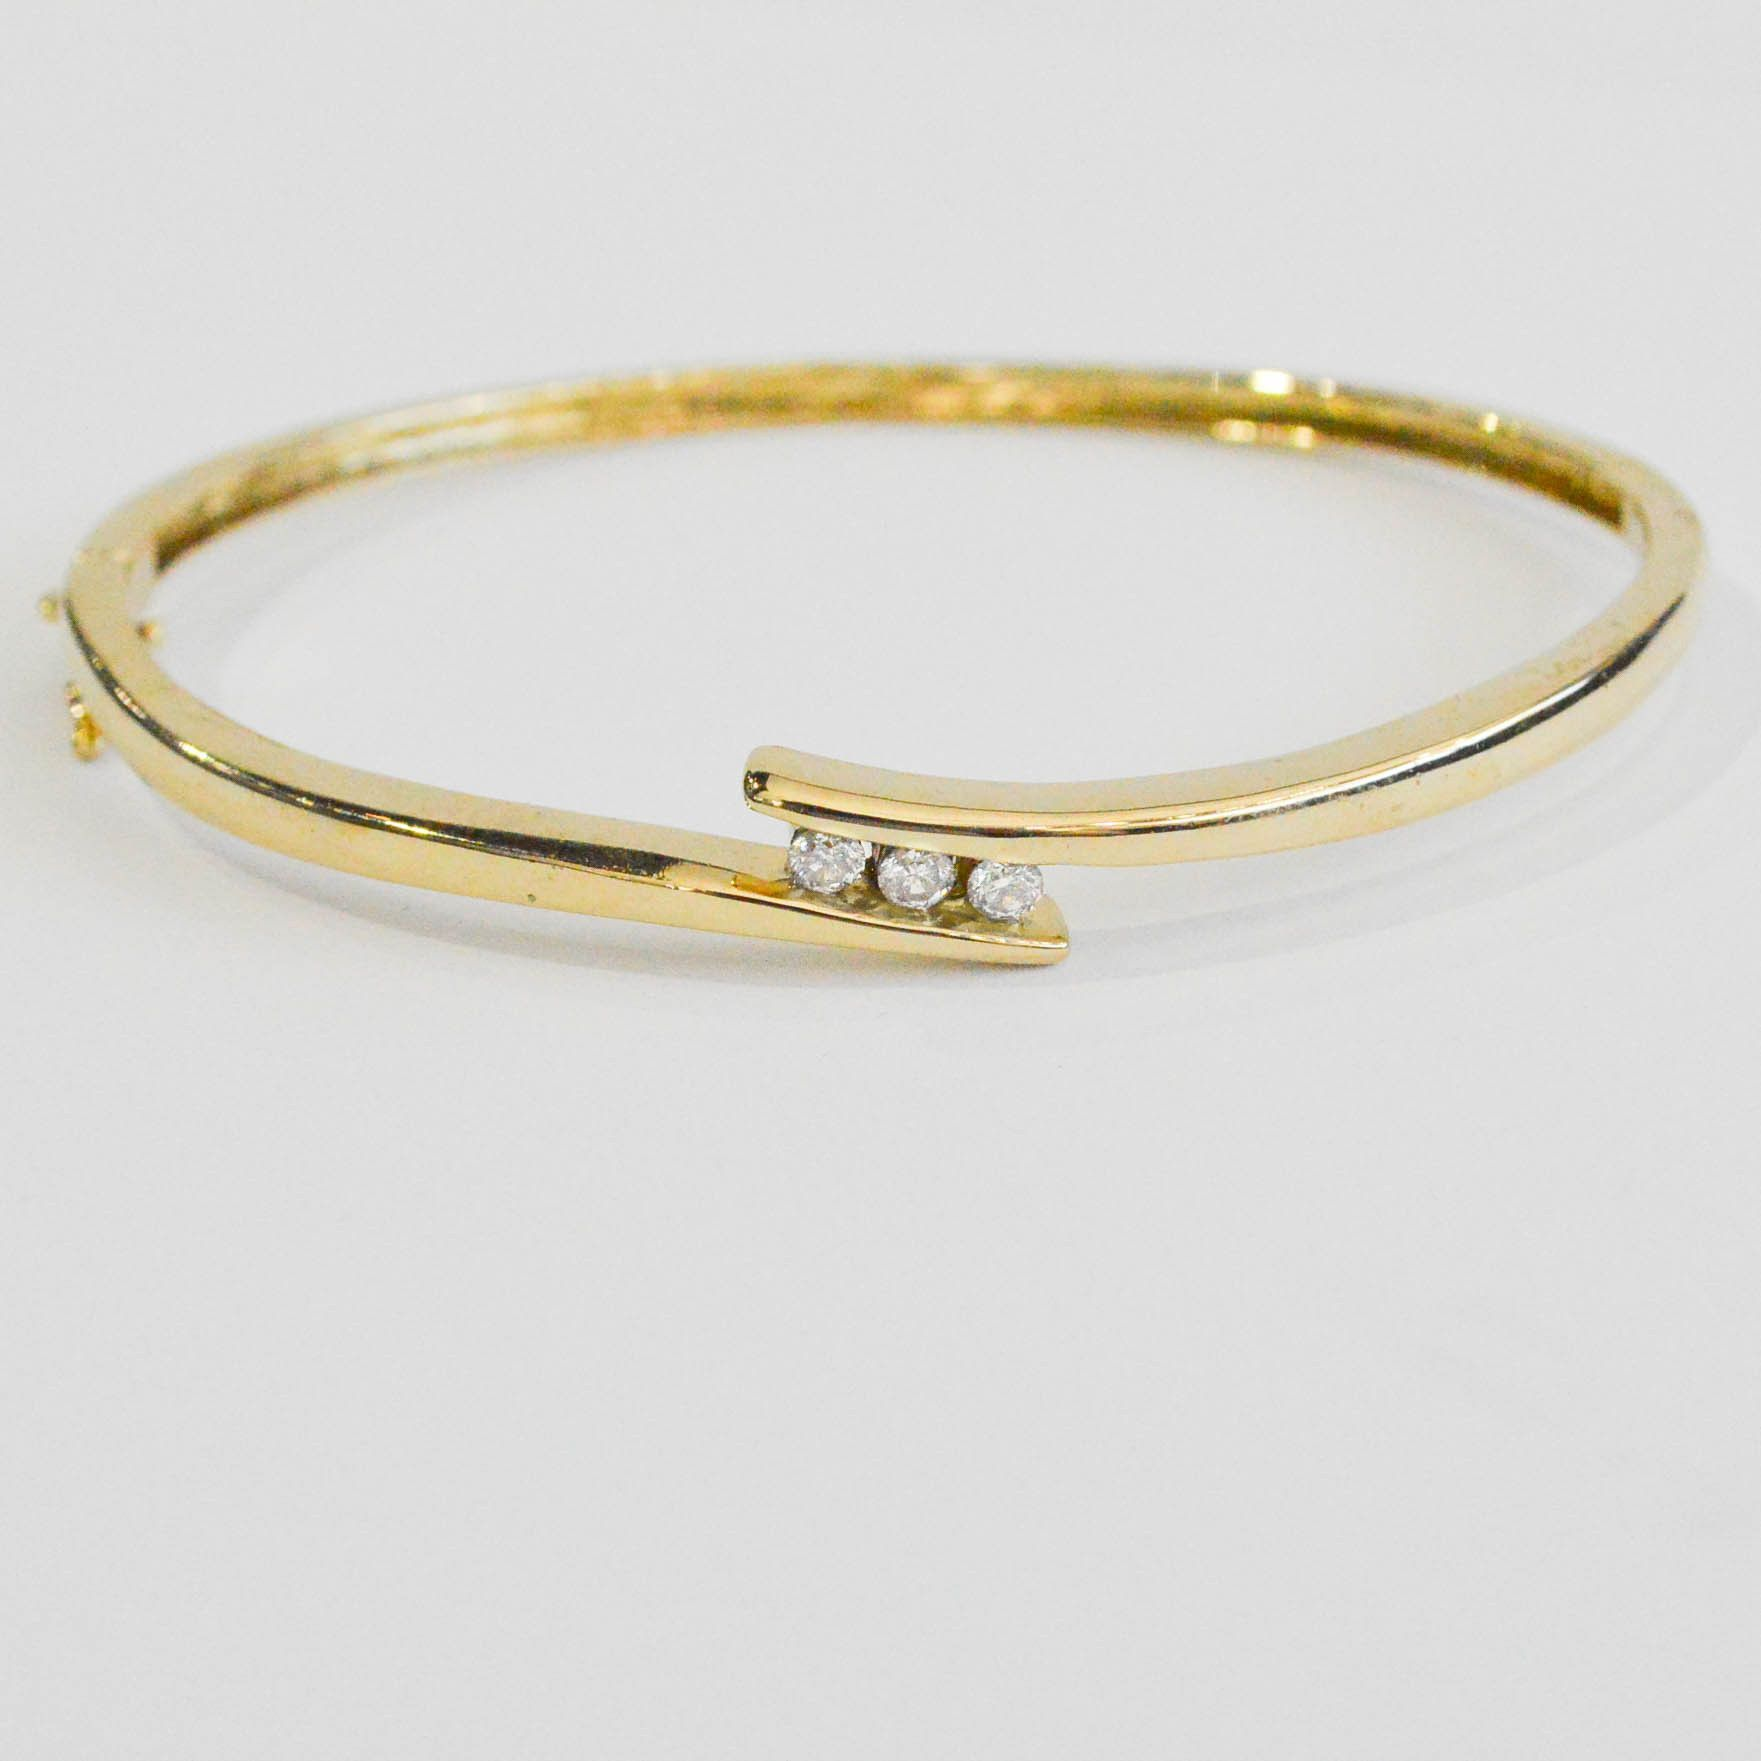 diamond gold bicolor bangle stylish bangles pin goldberg bracelet juweliers with carat